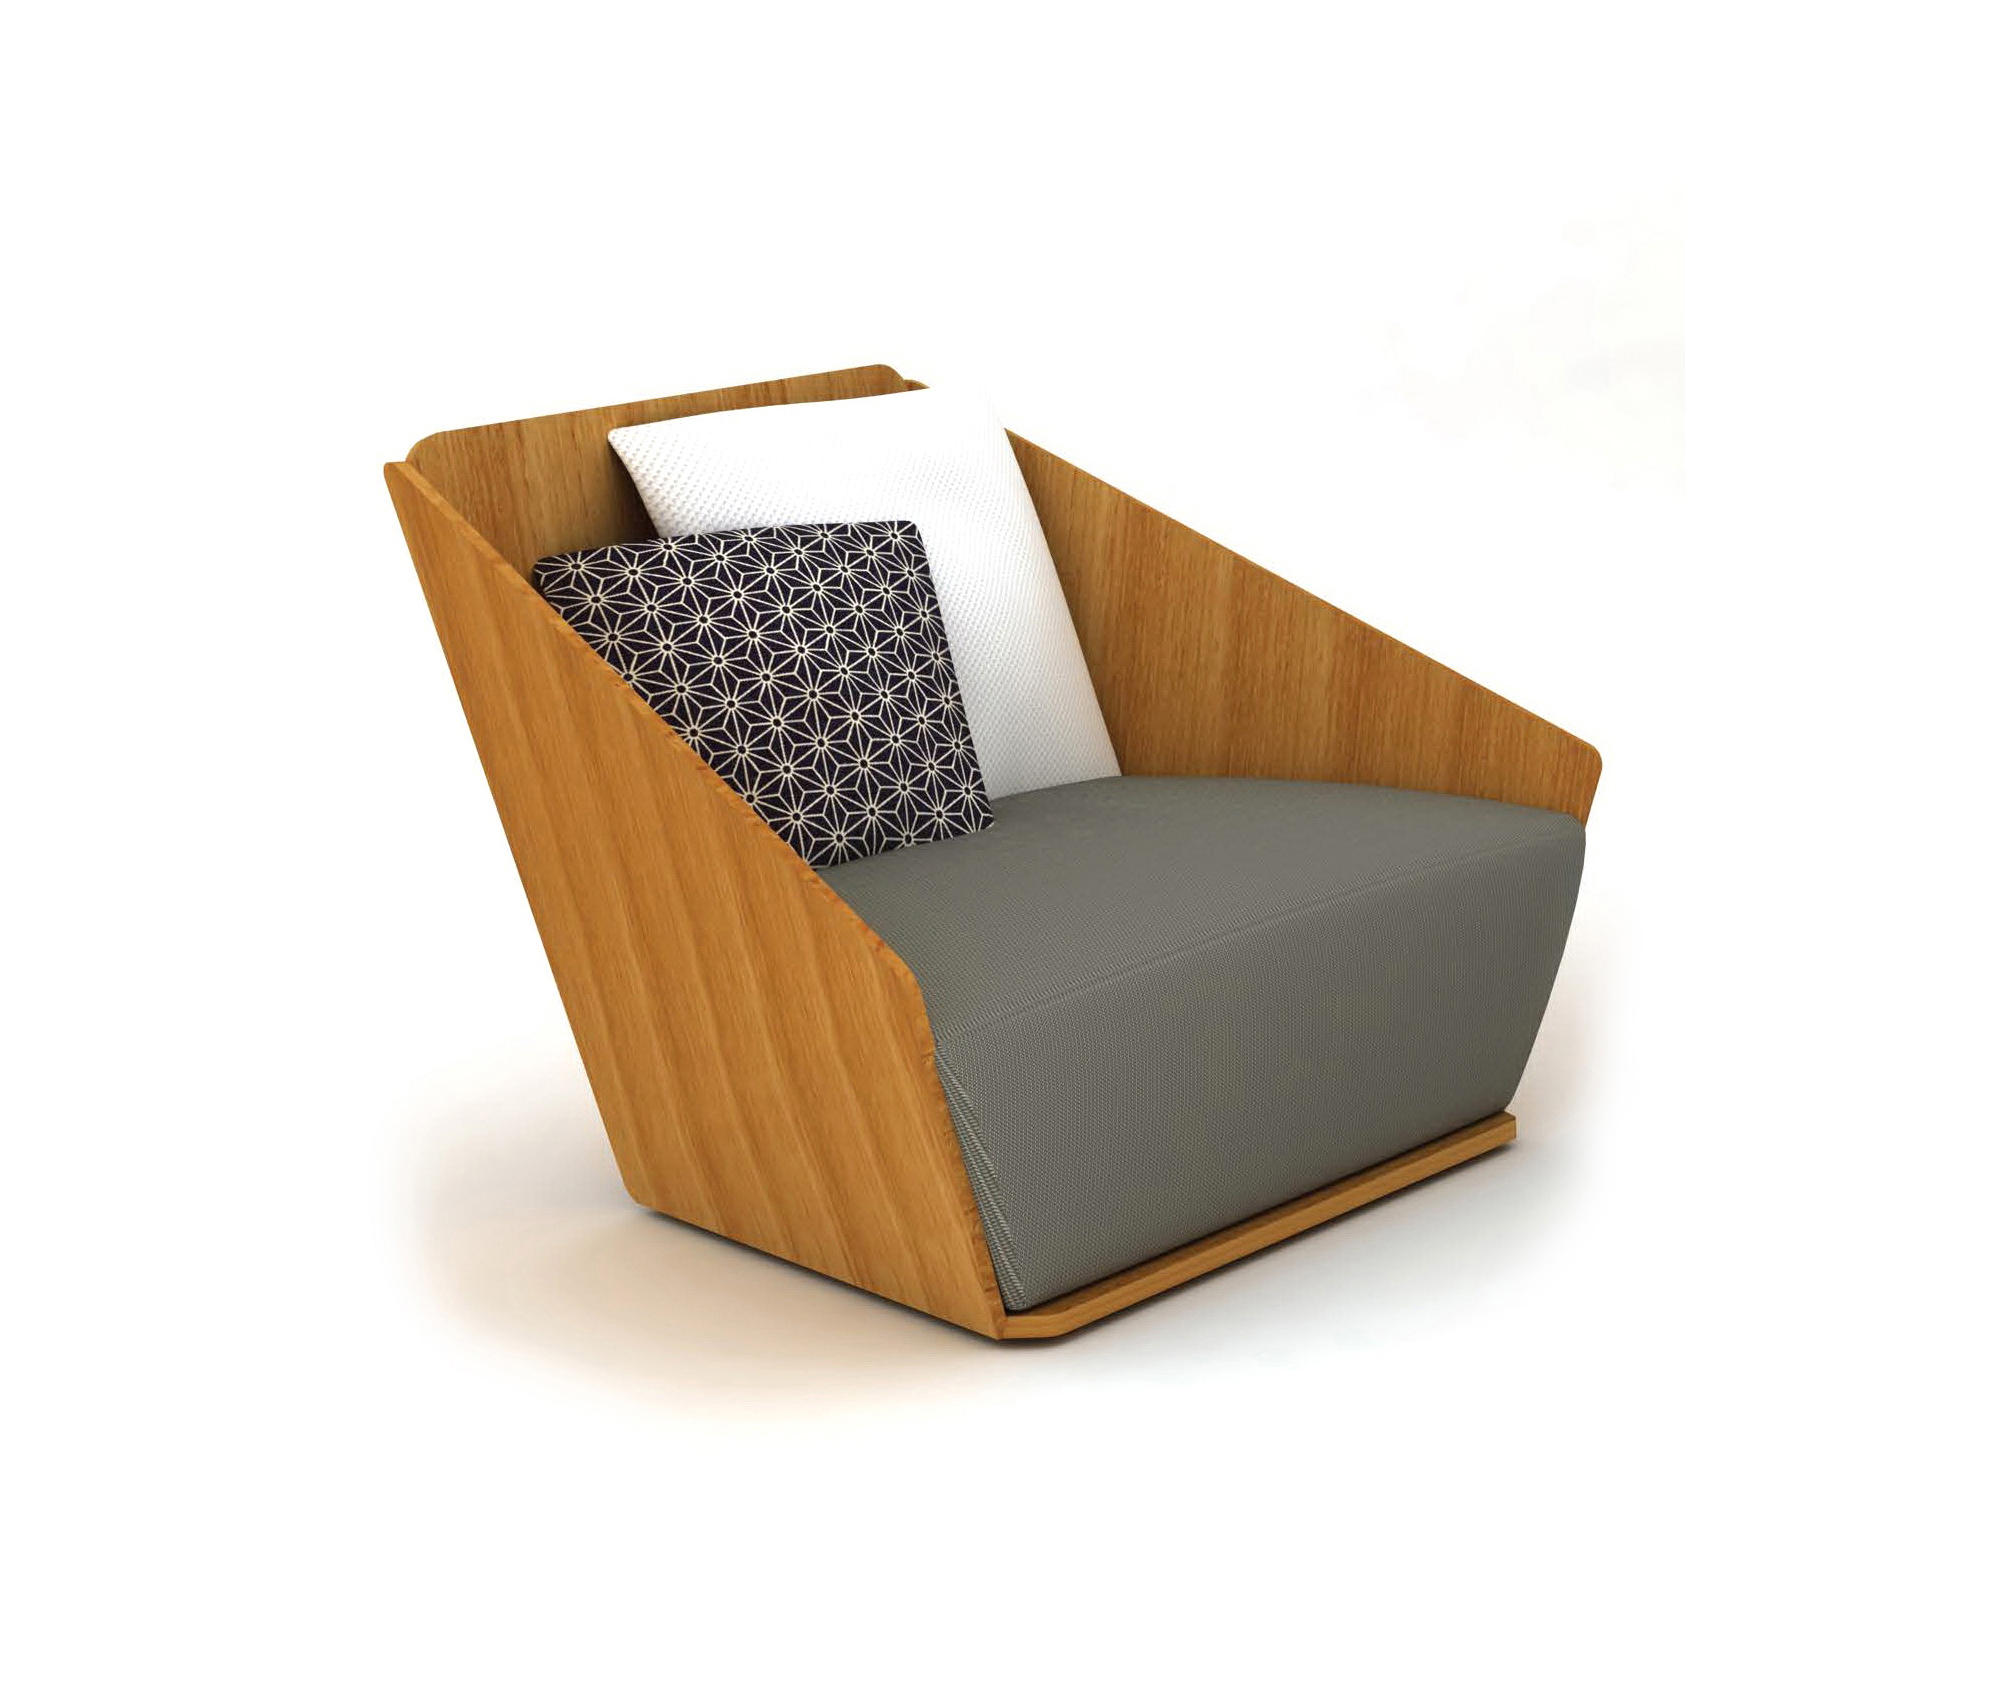 ORIGAMI - Lounge chairs from Deesawat | Architonic - photo#26